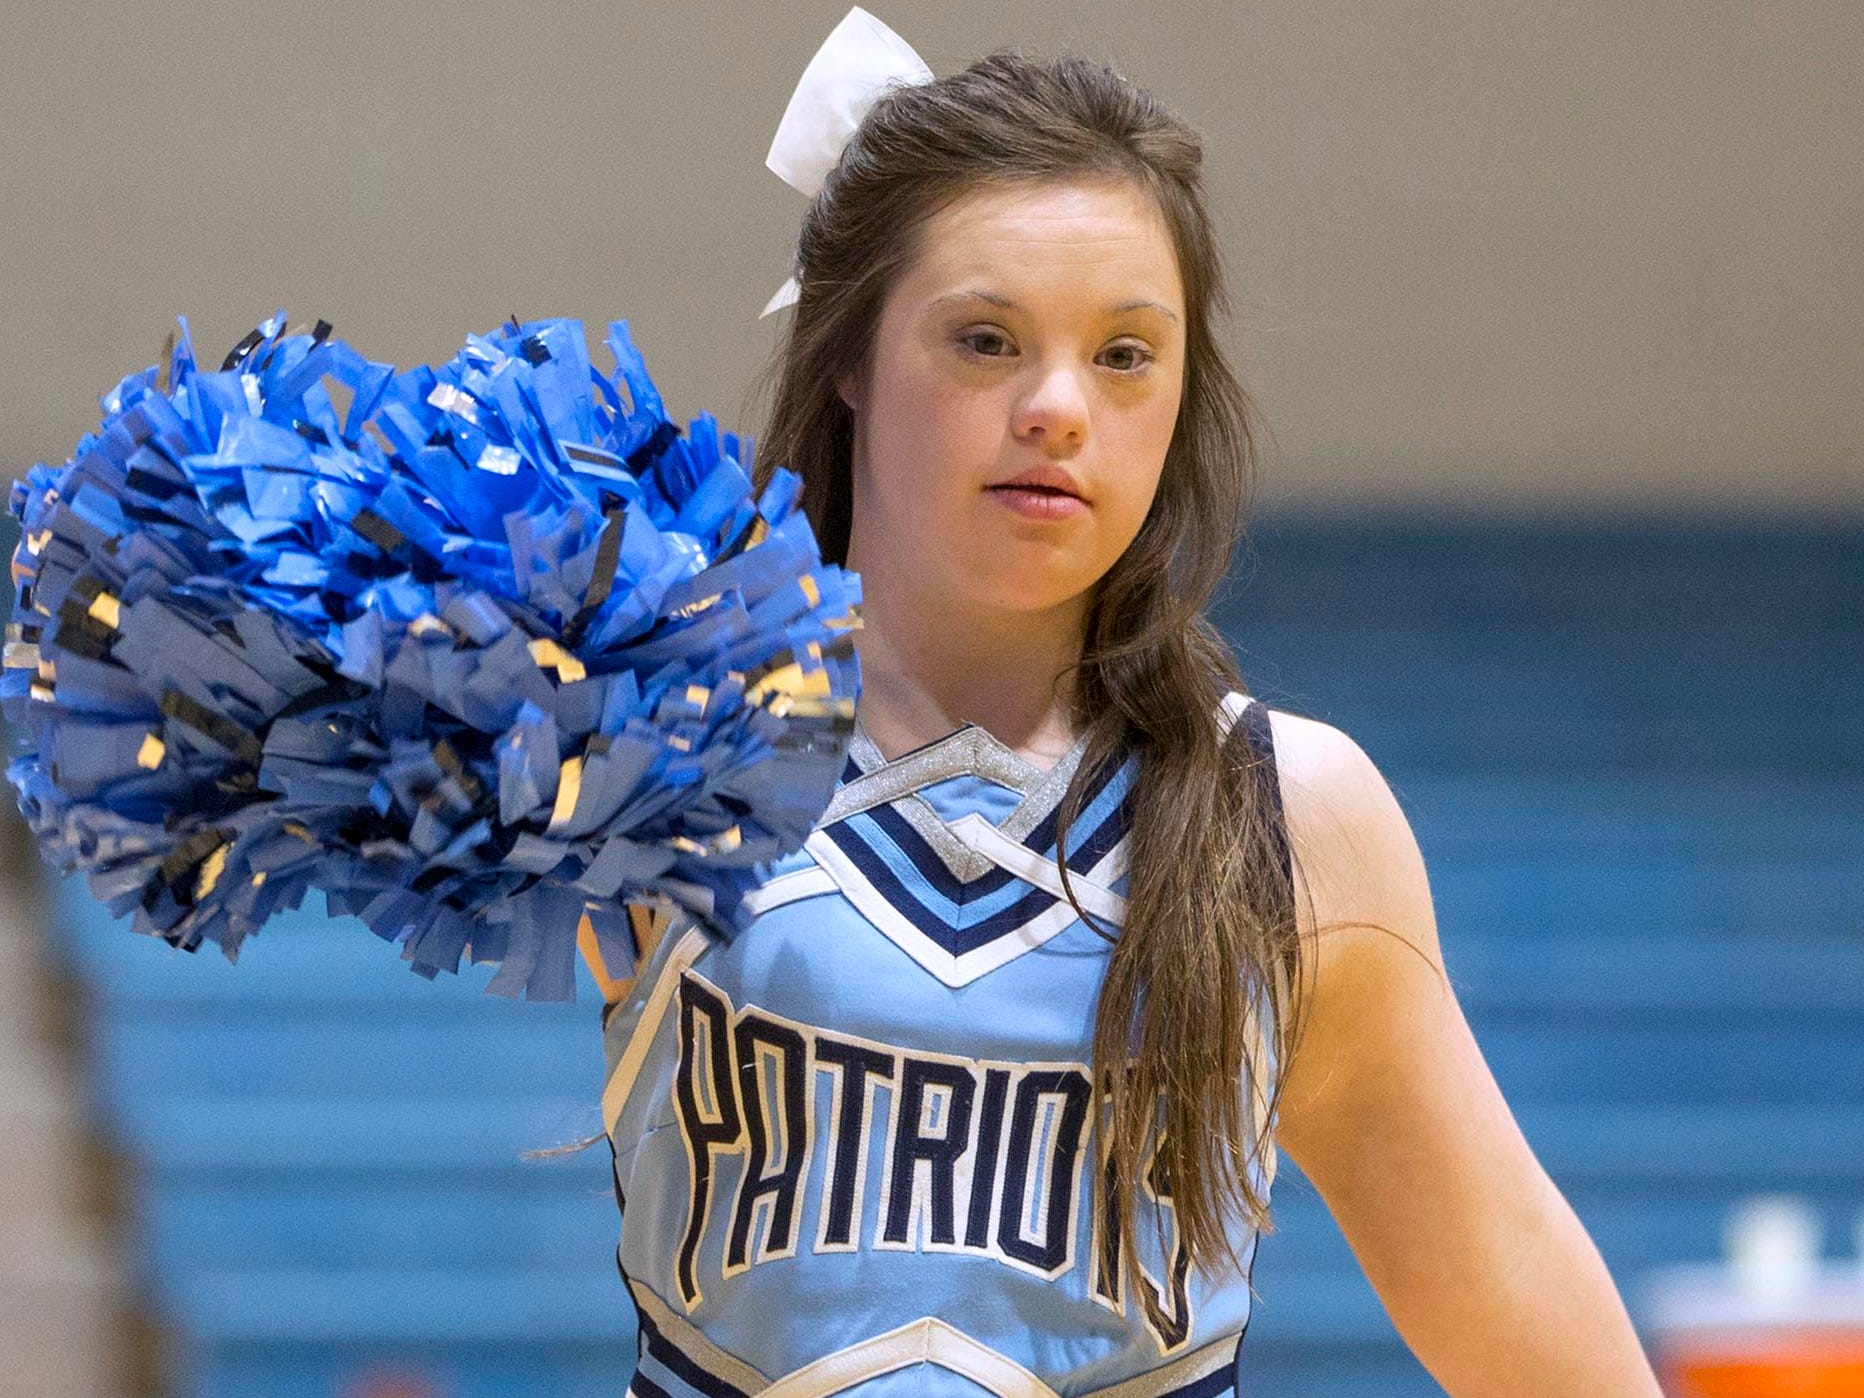 Alaina Lardaro has Down Syndrome, but it doesn't stop her from being as active as any other teen. Along with many other talents, she is a member of the Freehold High School cheerleading squad on Freehold, NJ on Thursday, February 8, 2018